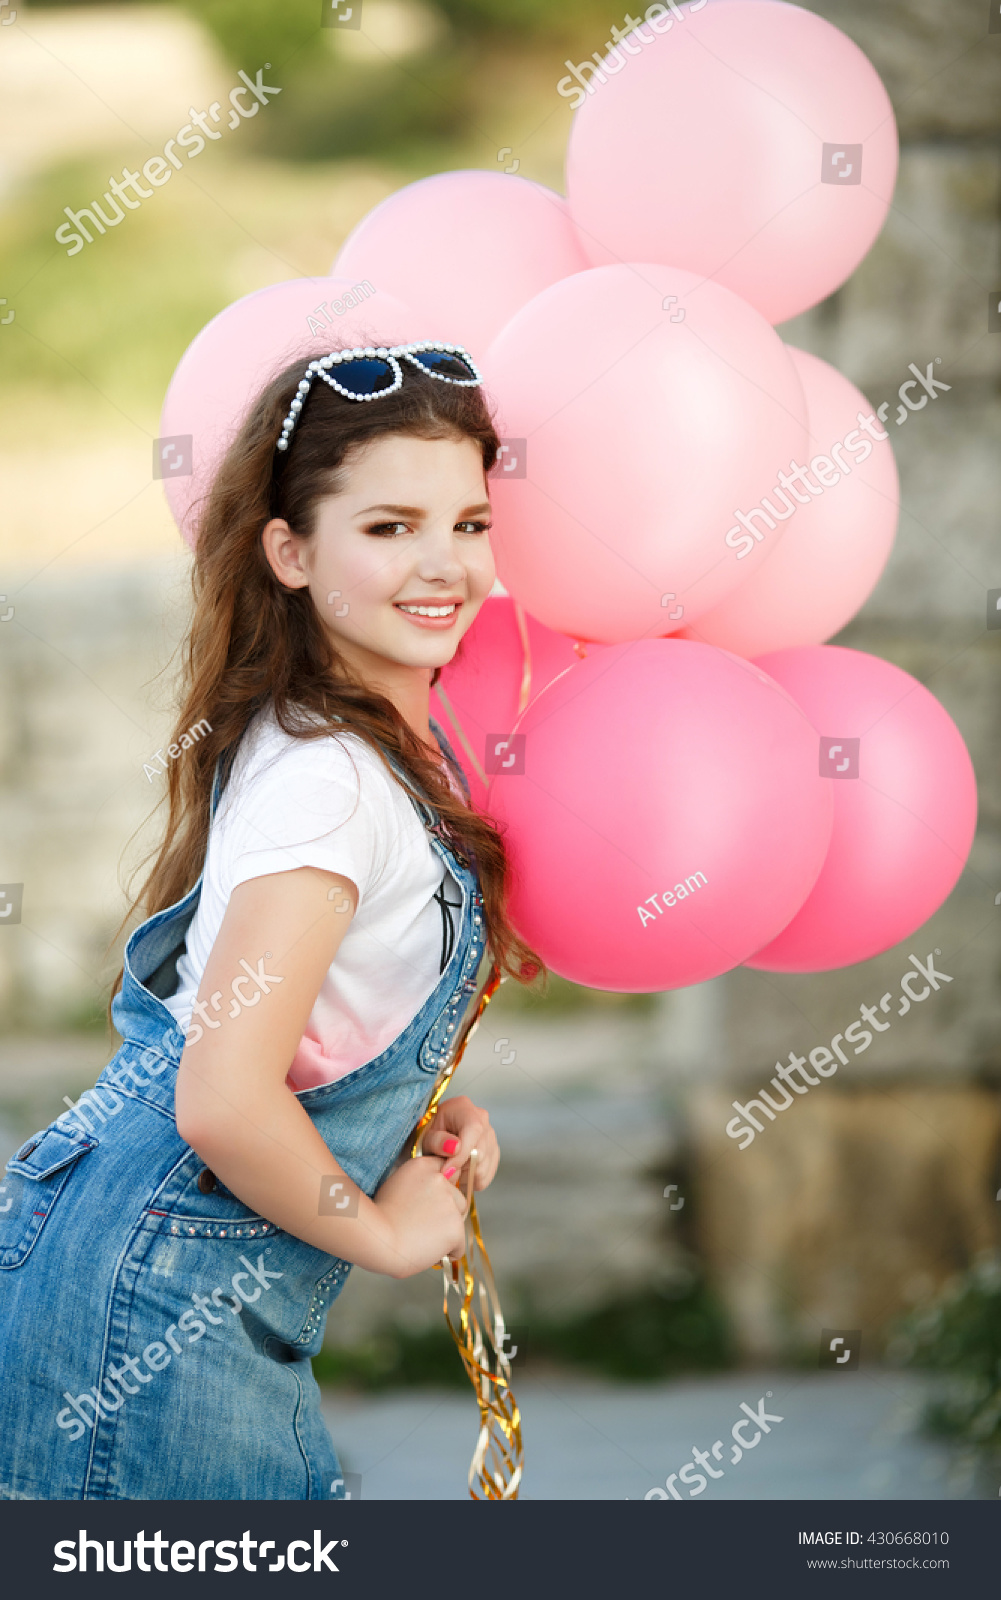 df3051eb3 Royalty-free Cute child with balloons outdoor